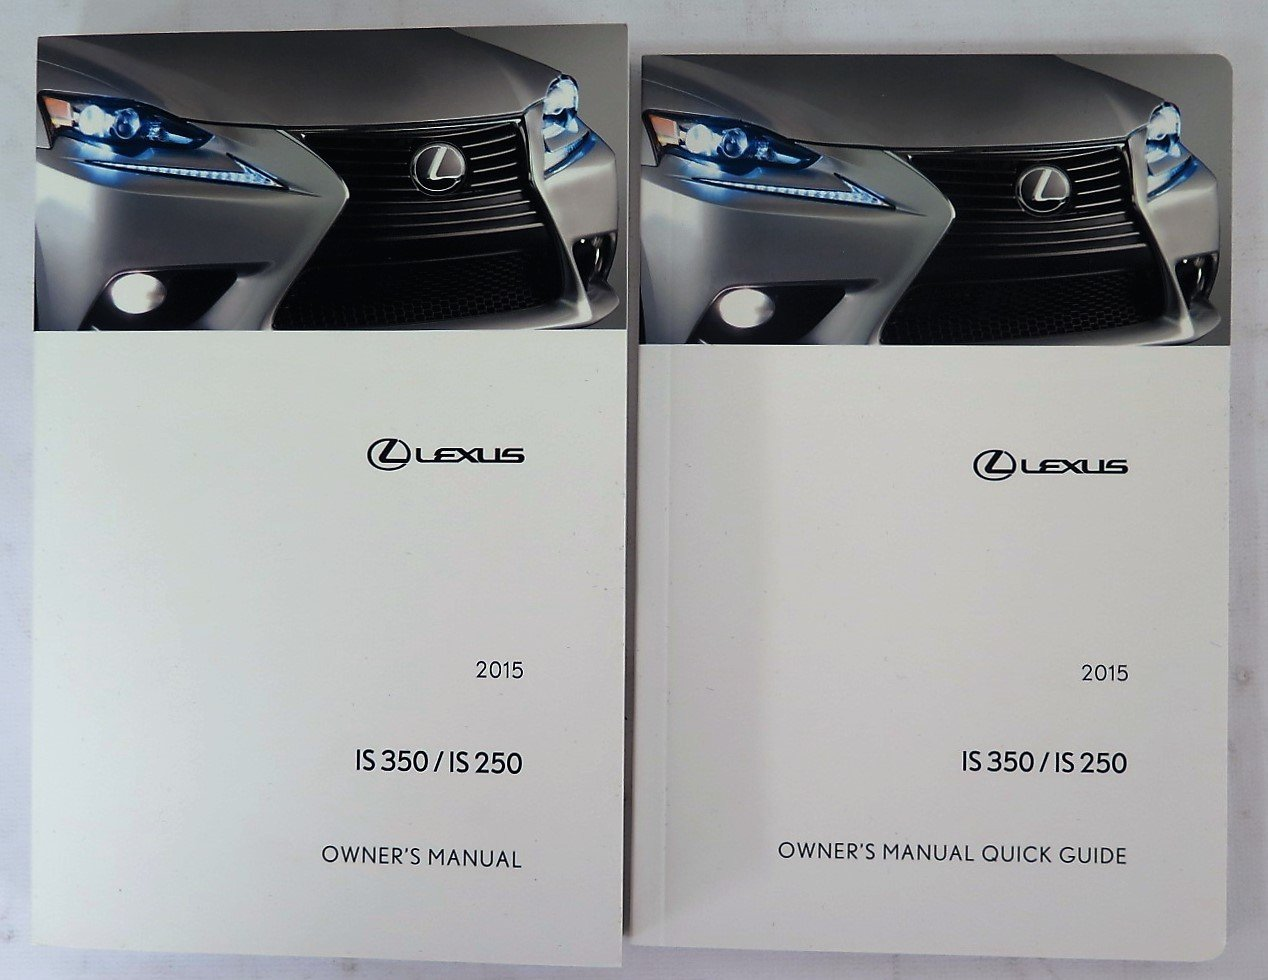 Amazon.com: 2015 Lexus IS 350 / IS 250 Owners Manual Guide Book: Automotive